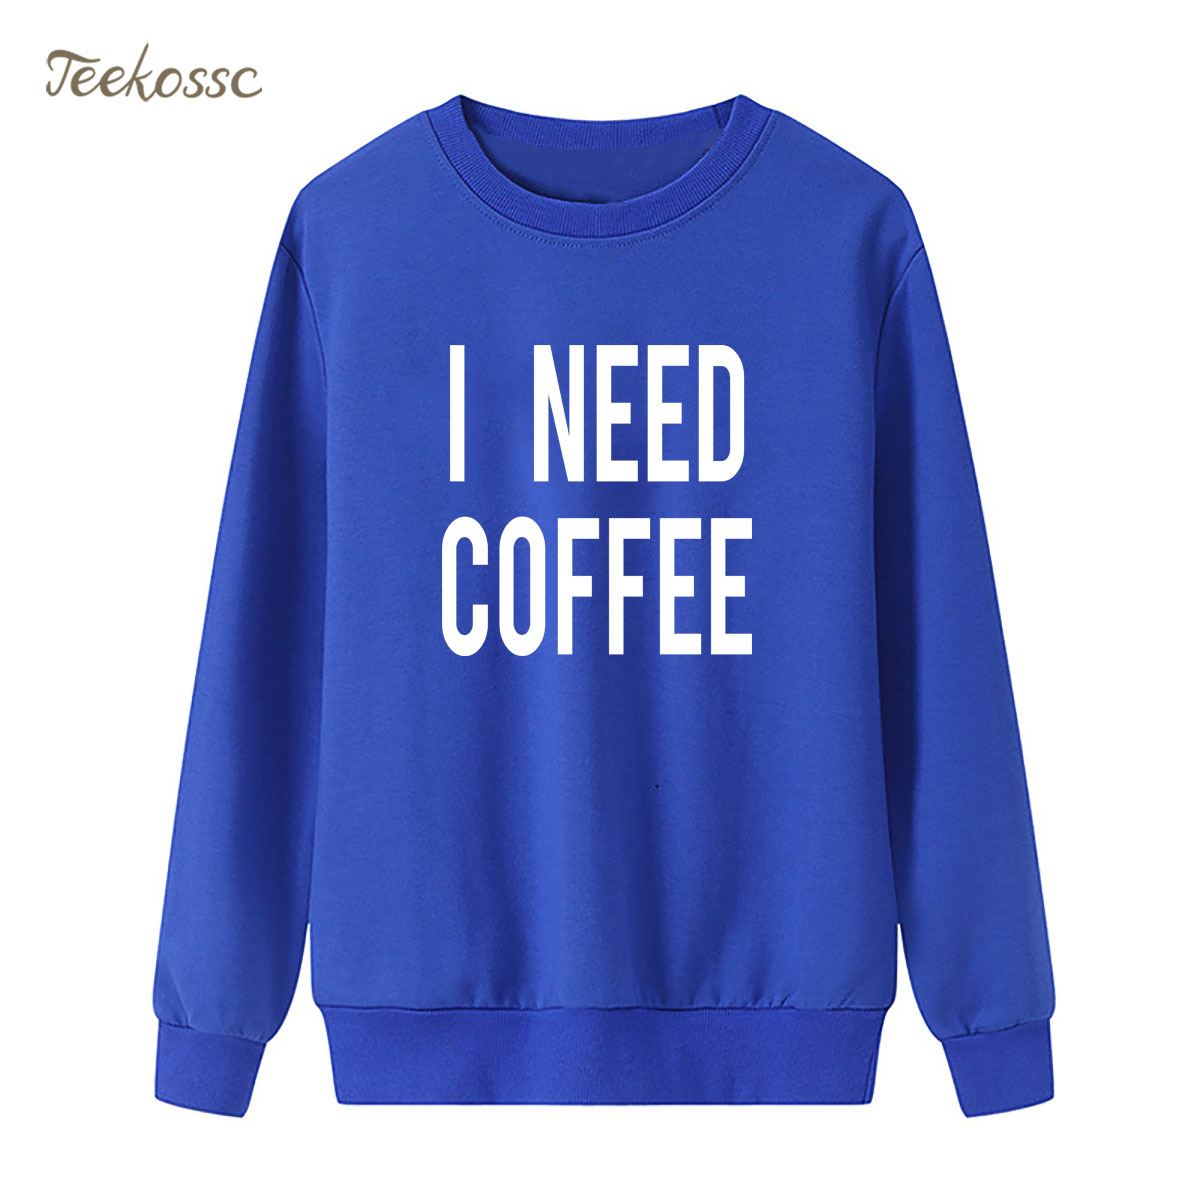 I Need Coffee Sweatshirt Funny Print Hoodie 2018 New Brand Winter Autumn Women Lasdies Pullover Loose Fleece Casual Streetwear